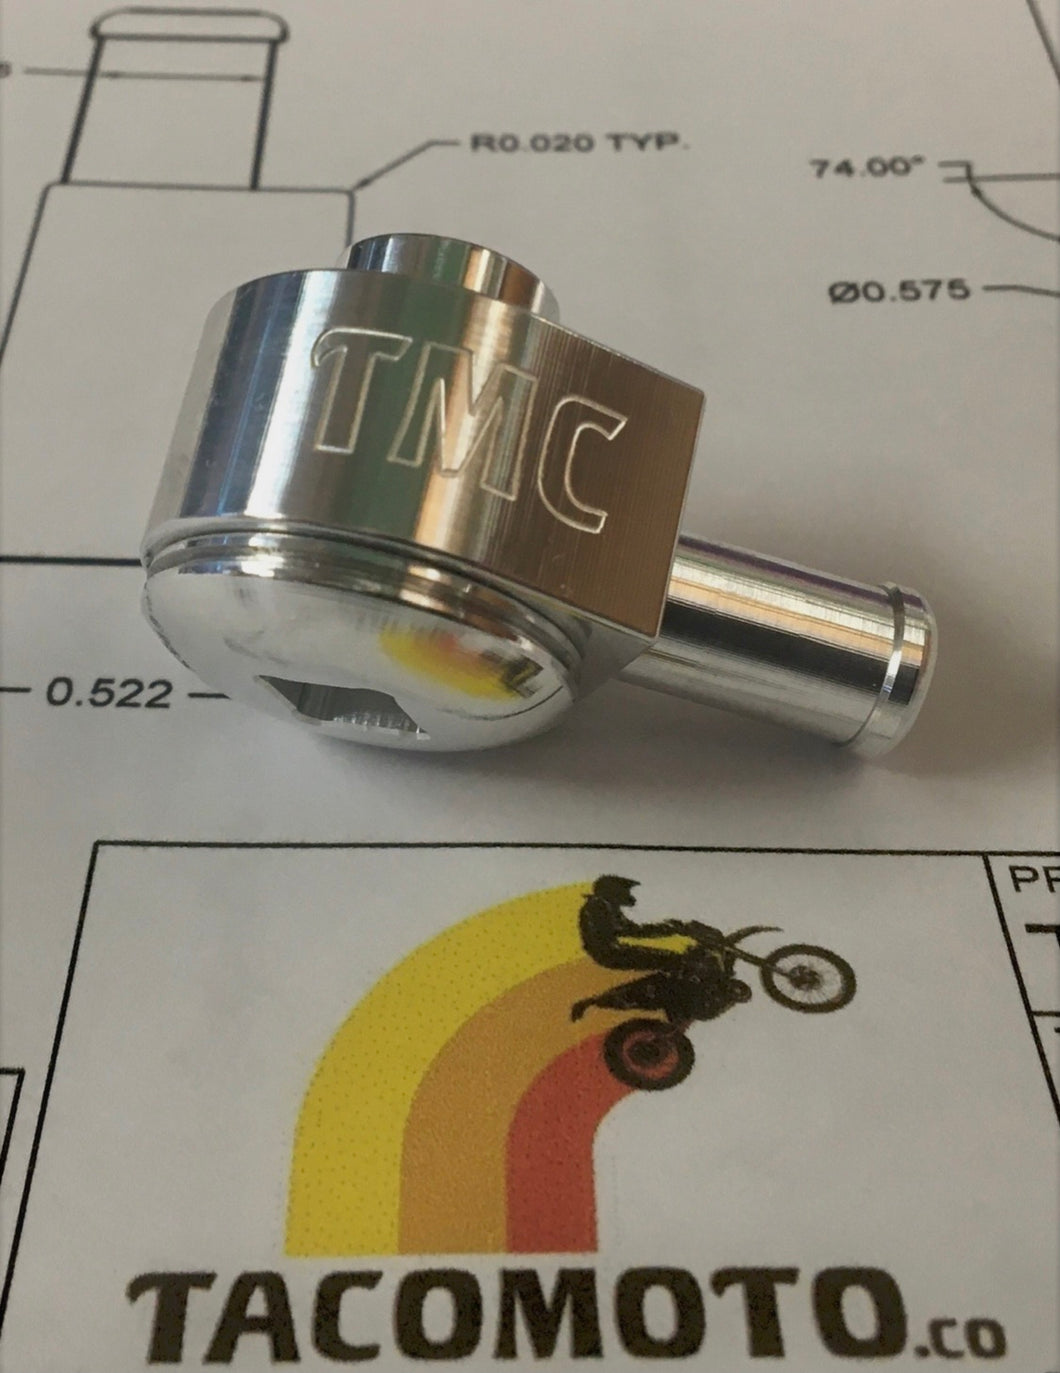 90 DEG FUEL PUMP FITTING FOR BOTH THIN AND THICK WALL TANKS BY TACO MOTO CO.